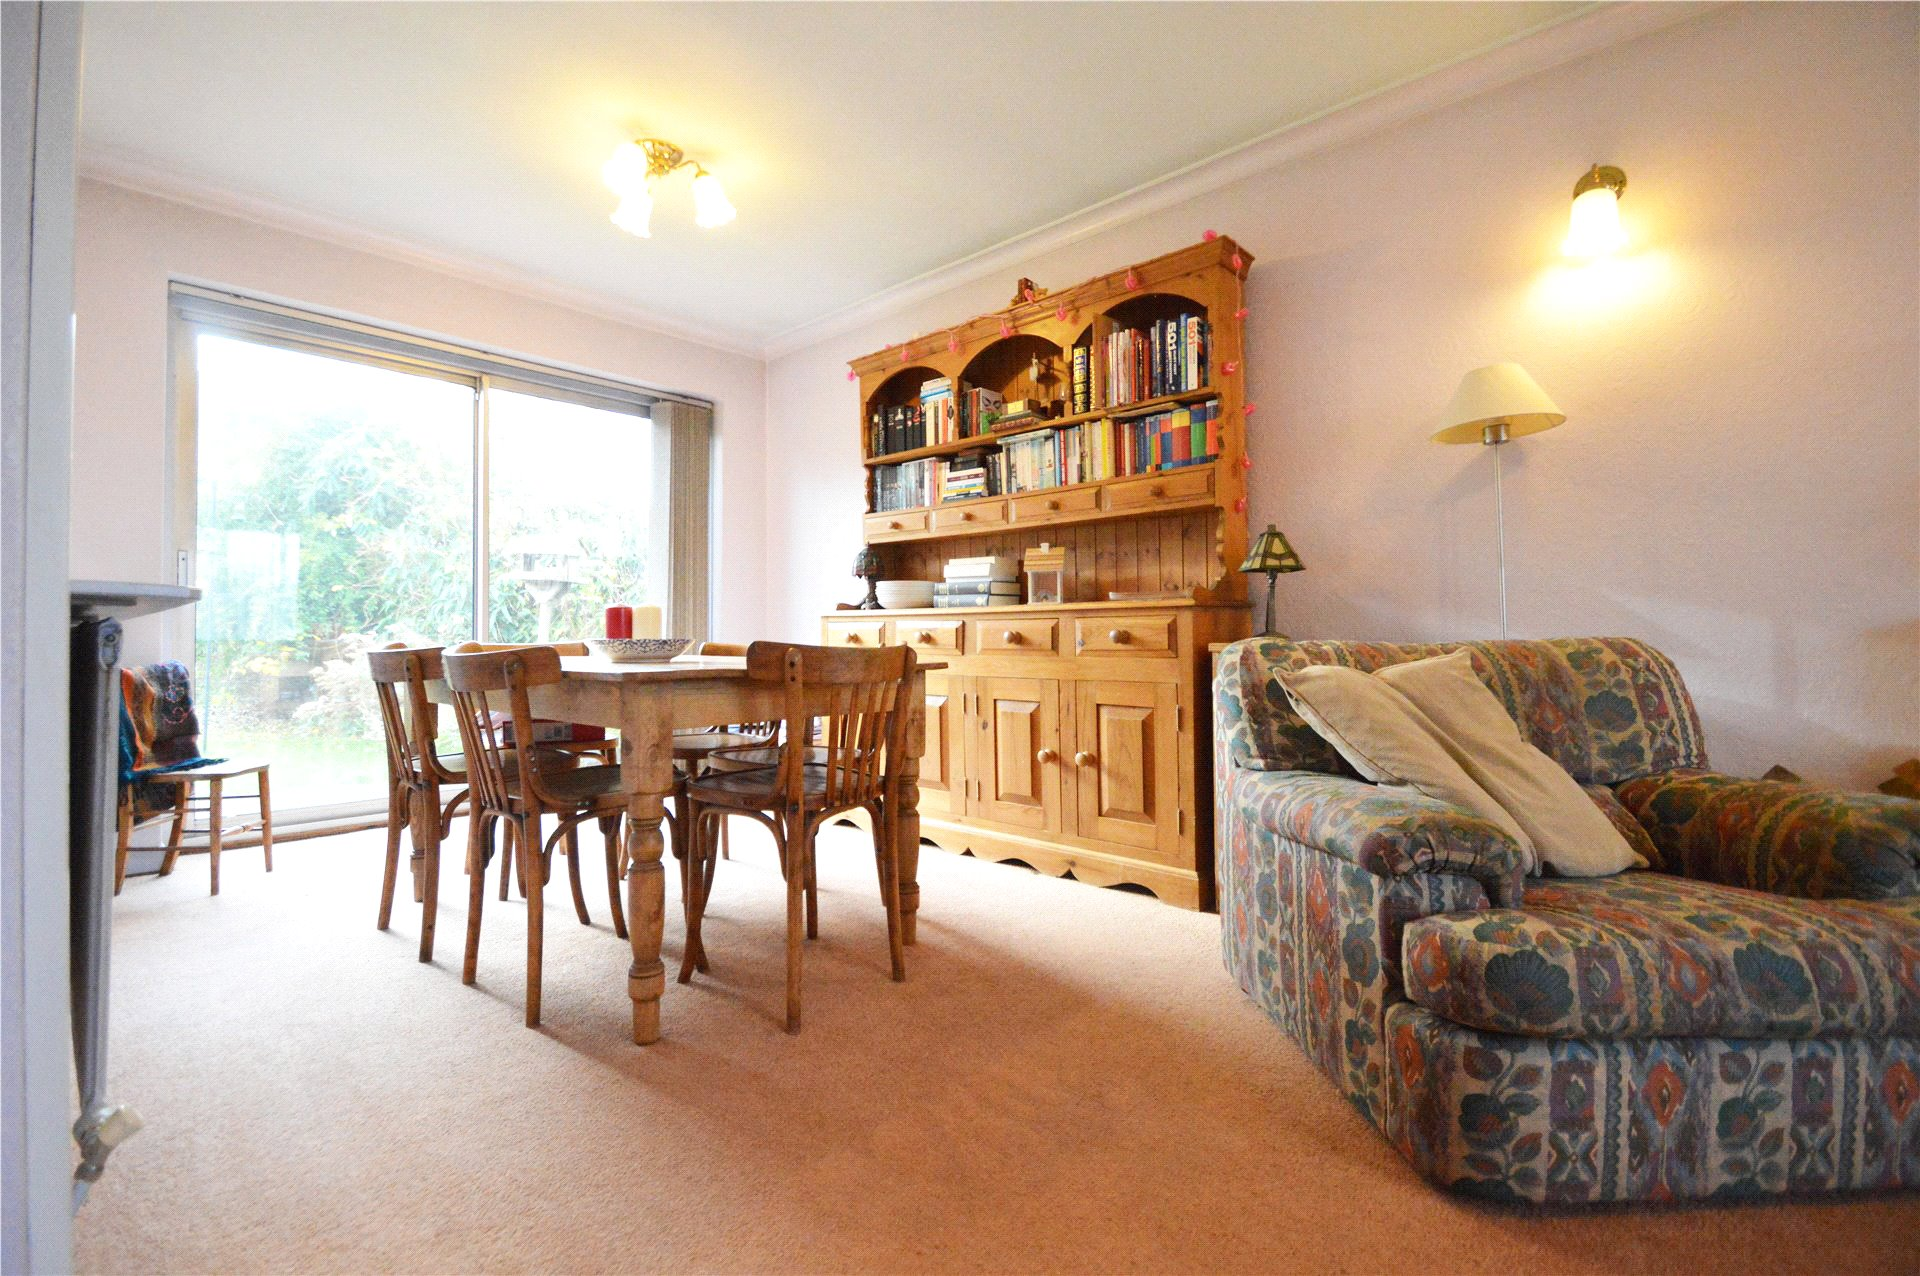 2 Bedrooms Detached Bungalow for sale in Moor Lane, Maidenhead, Berkshire, SL6